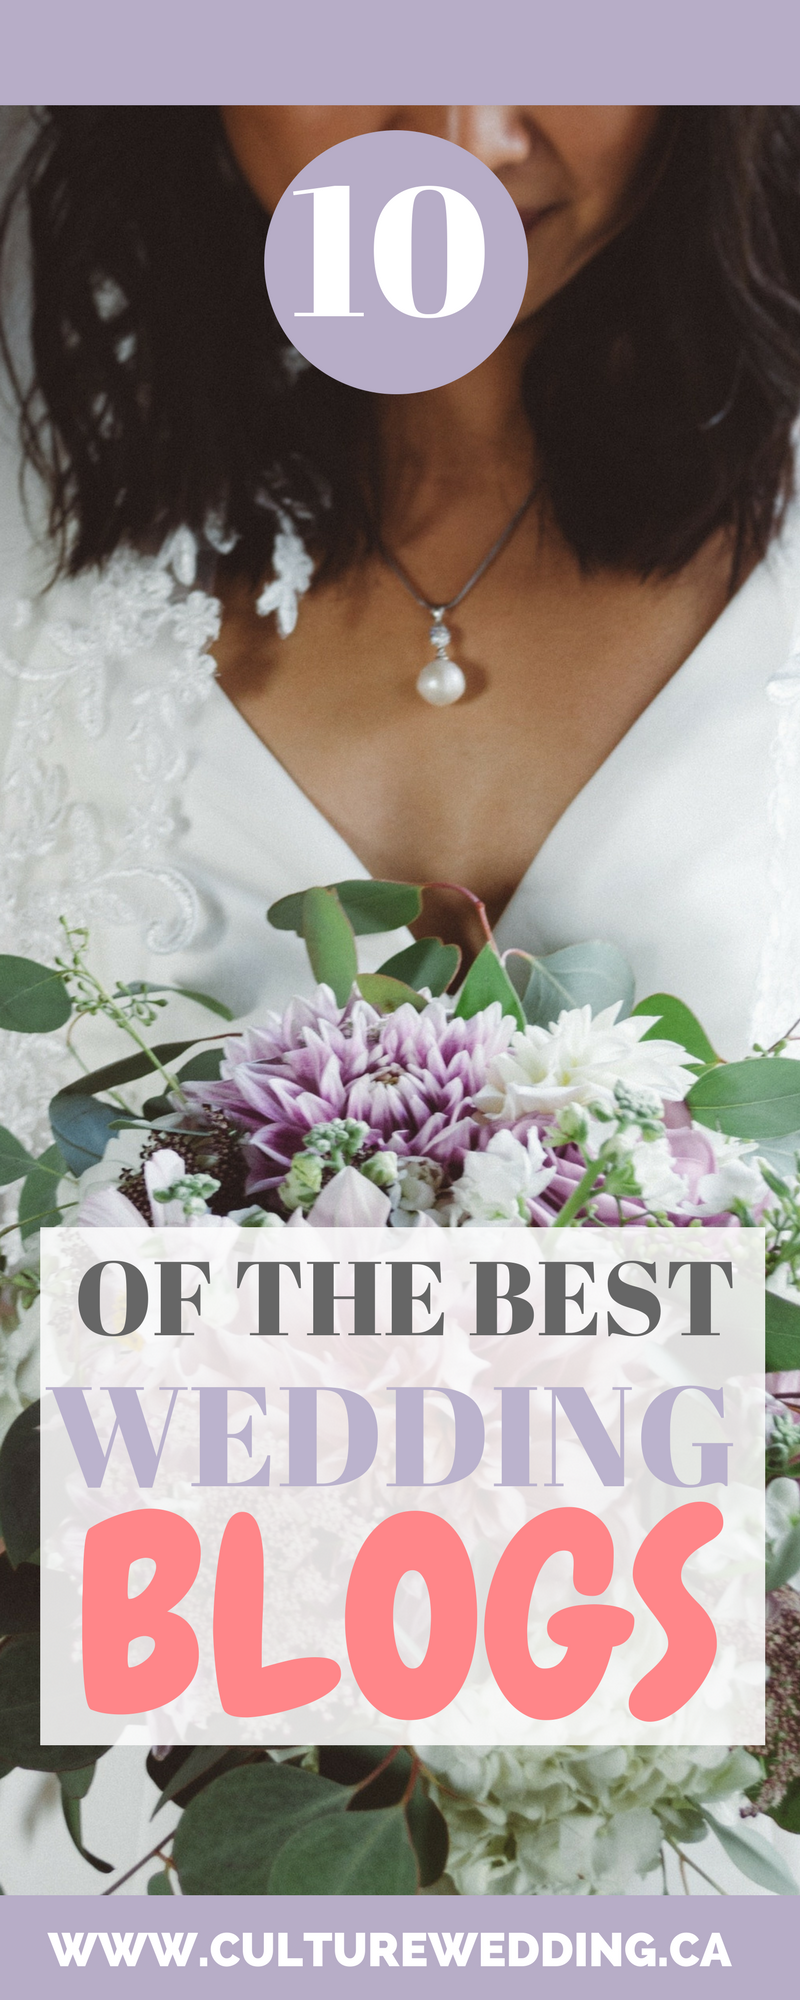 10 OF THE BEST WEDDING BLOGS